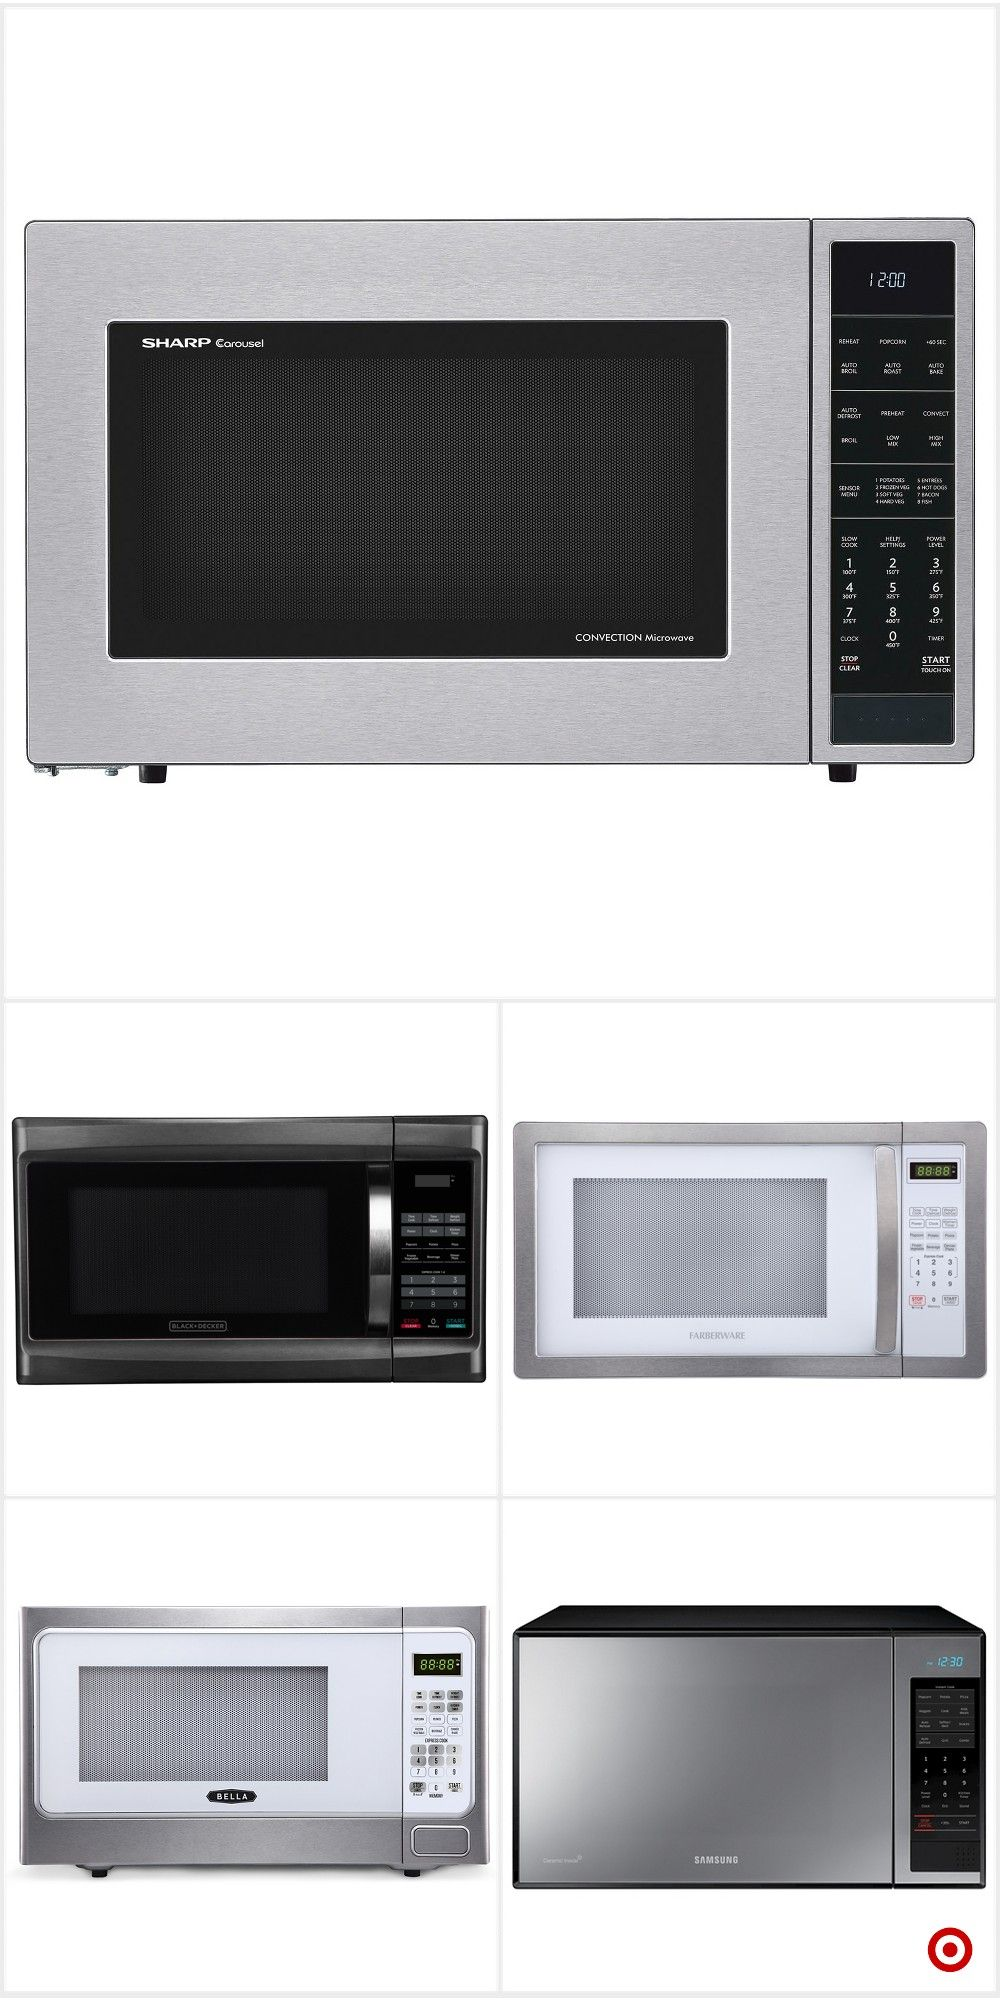 Shop Target For Microwave Ovens You Will Love At Great Low Prices Free Shipping On Orders Of 35 Or Free Same Day Pick Microwave Ovens Microwave Shop Target